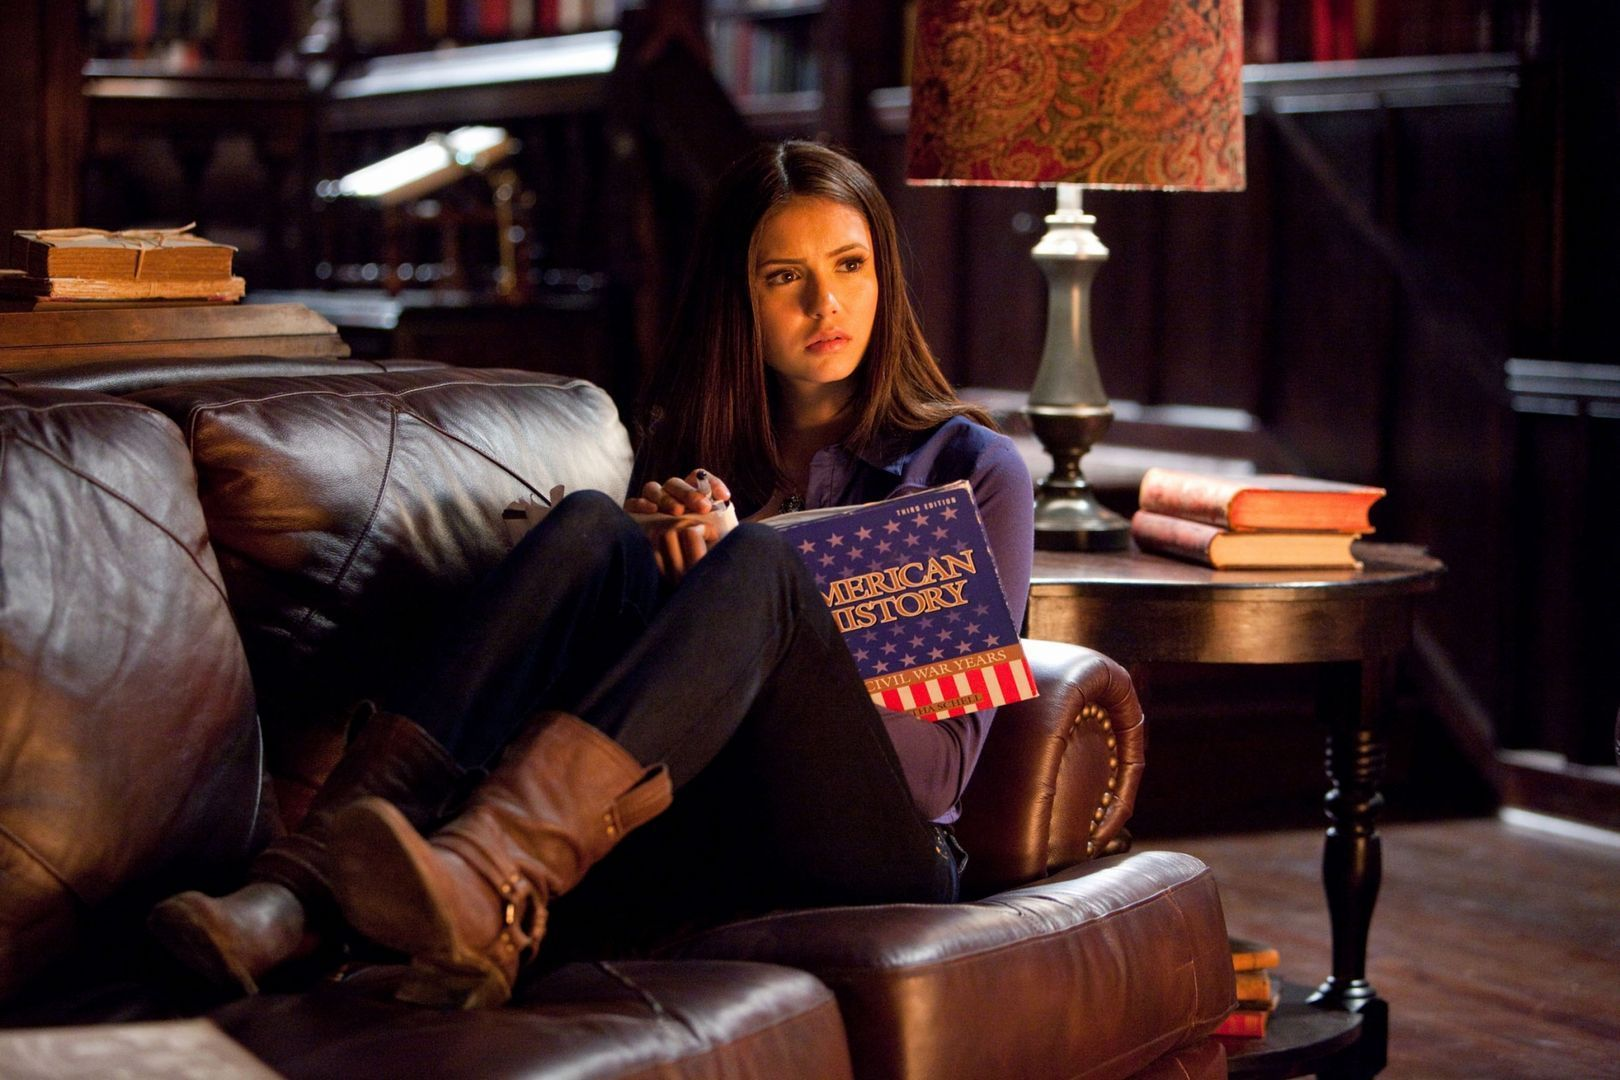 http://images2.fanpop.com/image/photos/11300000/1x20-Blood-Brothers-Promotional-Photos-the-vampire-diaries-tv-show-11380900-1620-1080.jpg